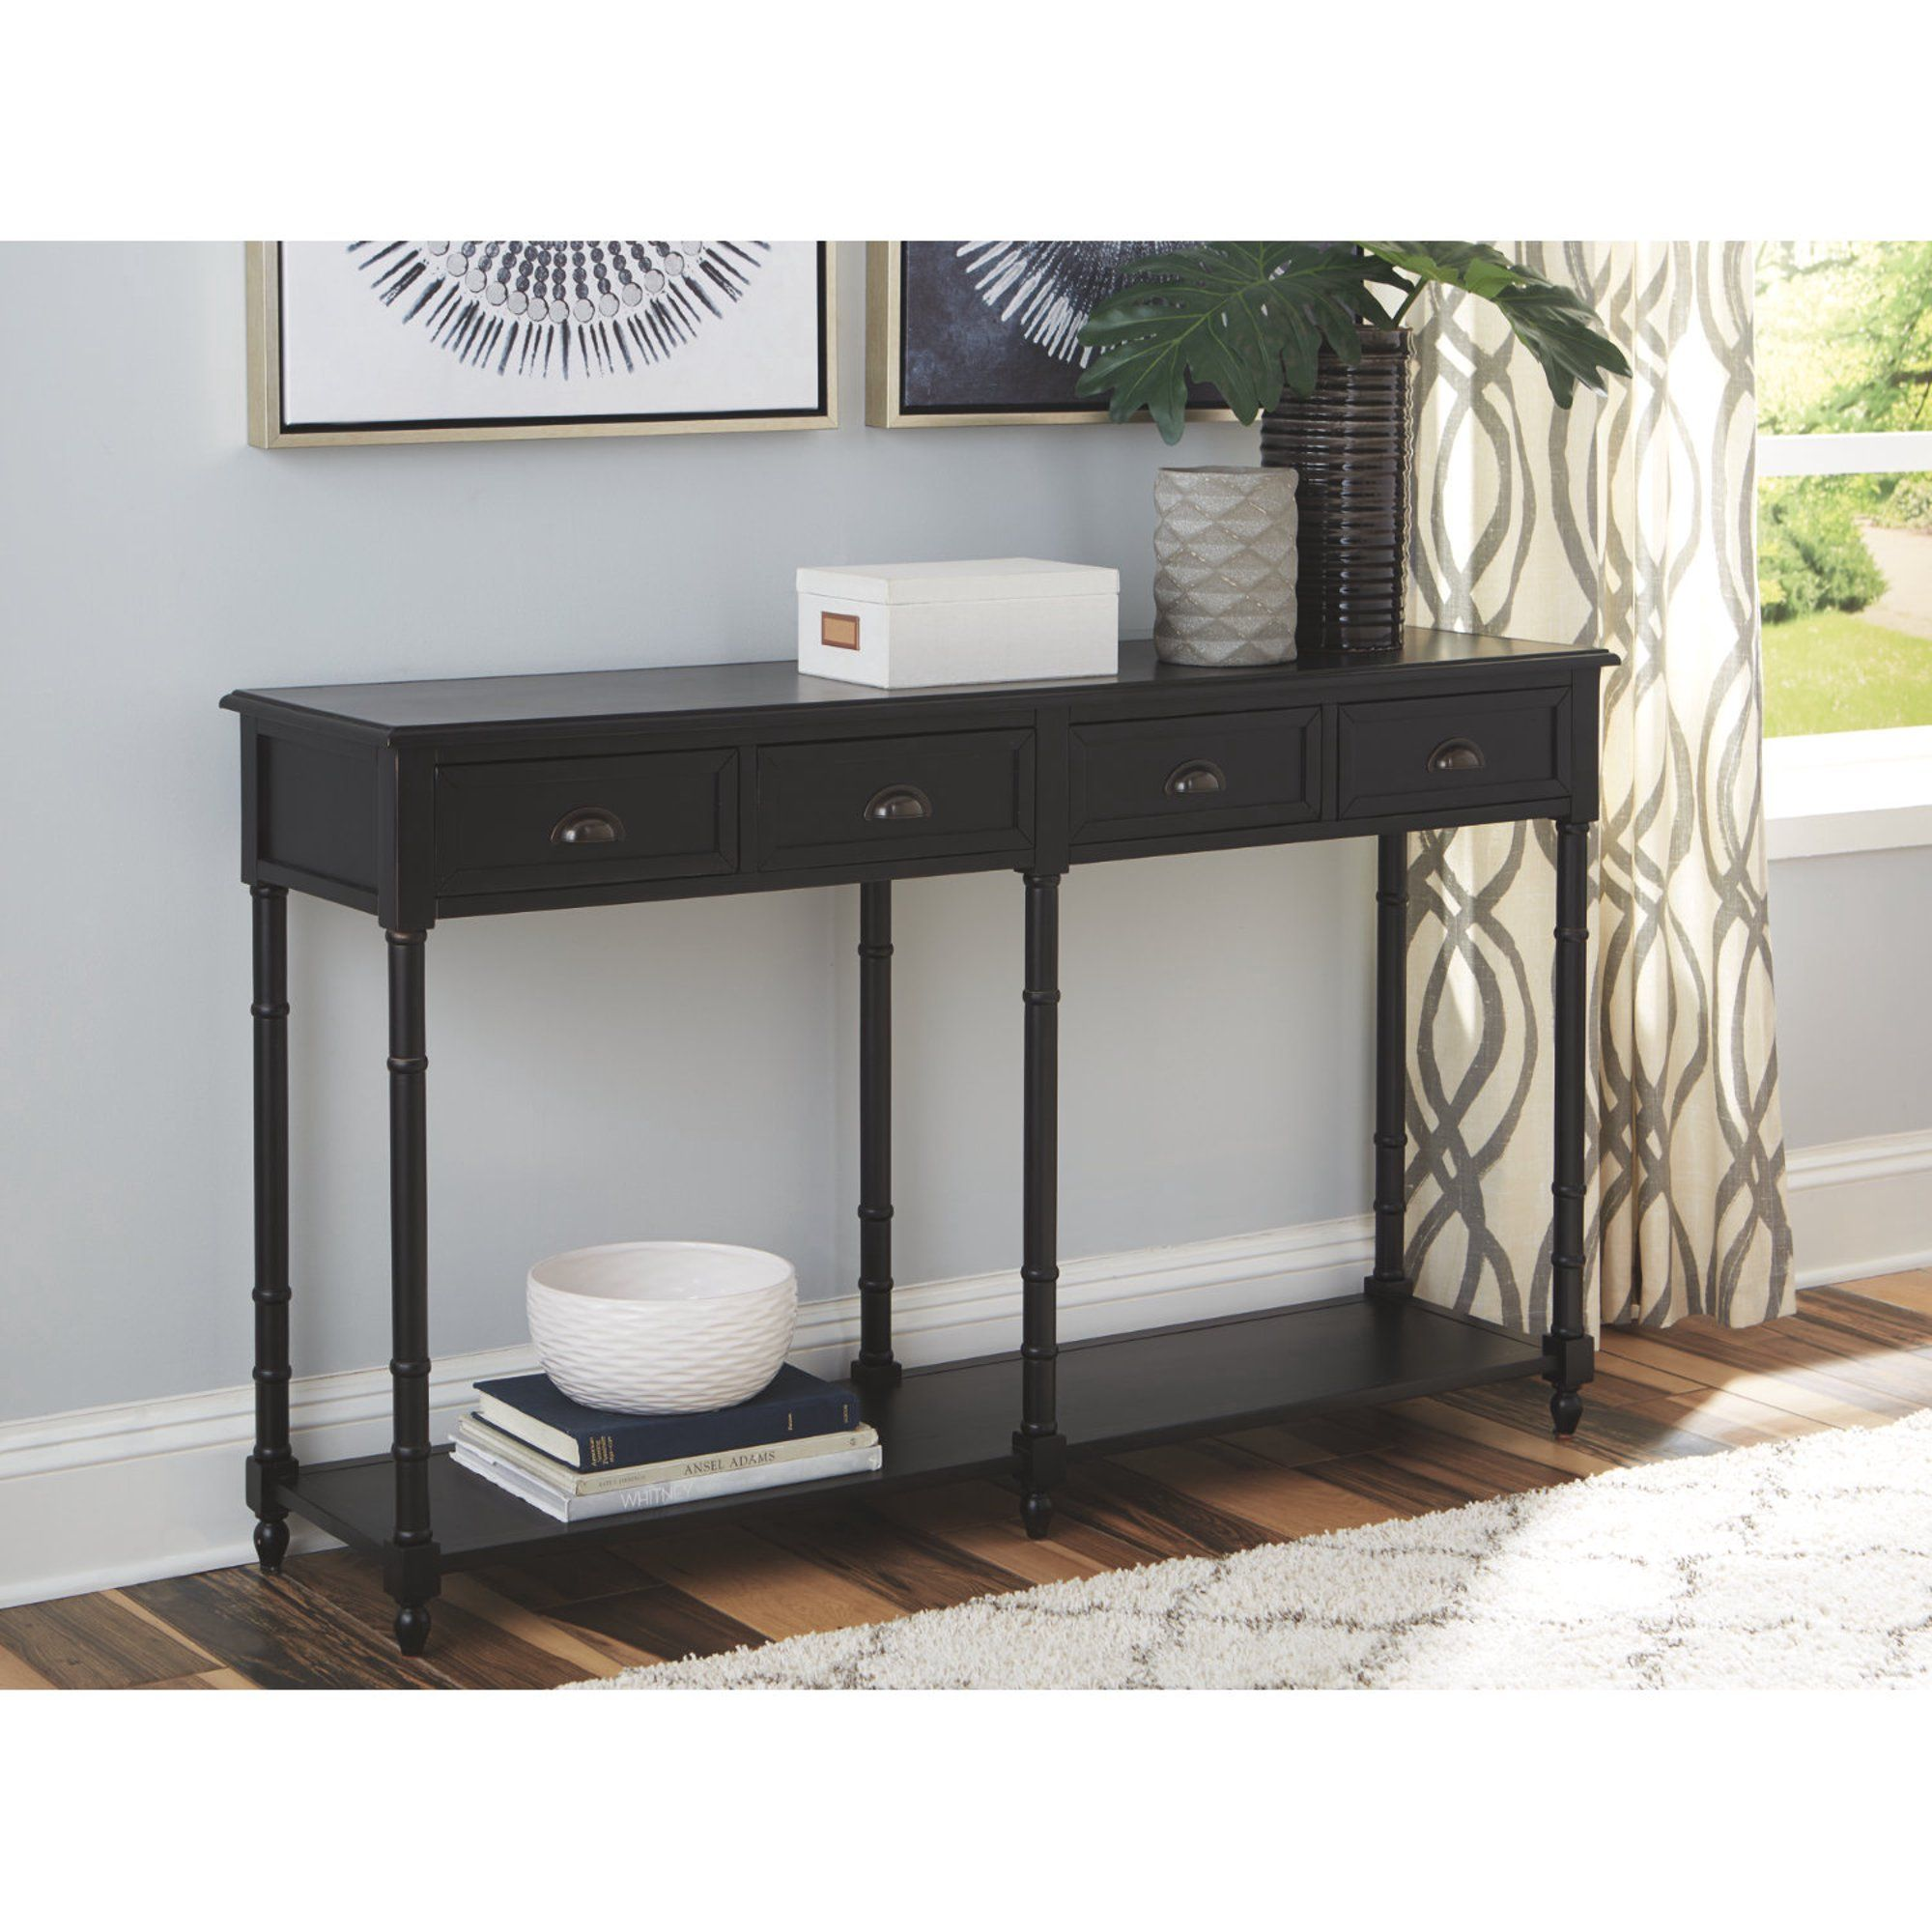 Home In 2020 Black Sofa Table Black Console Table Sofa Table